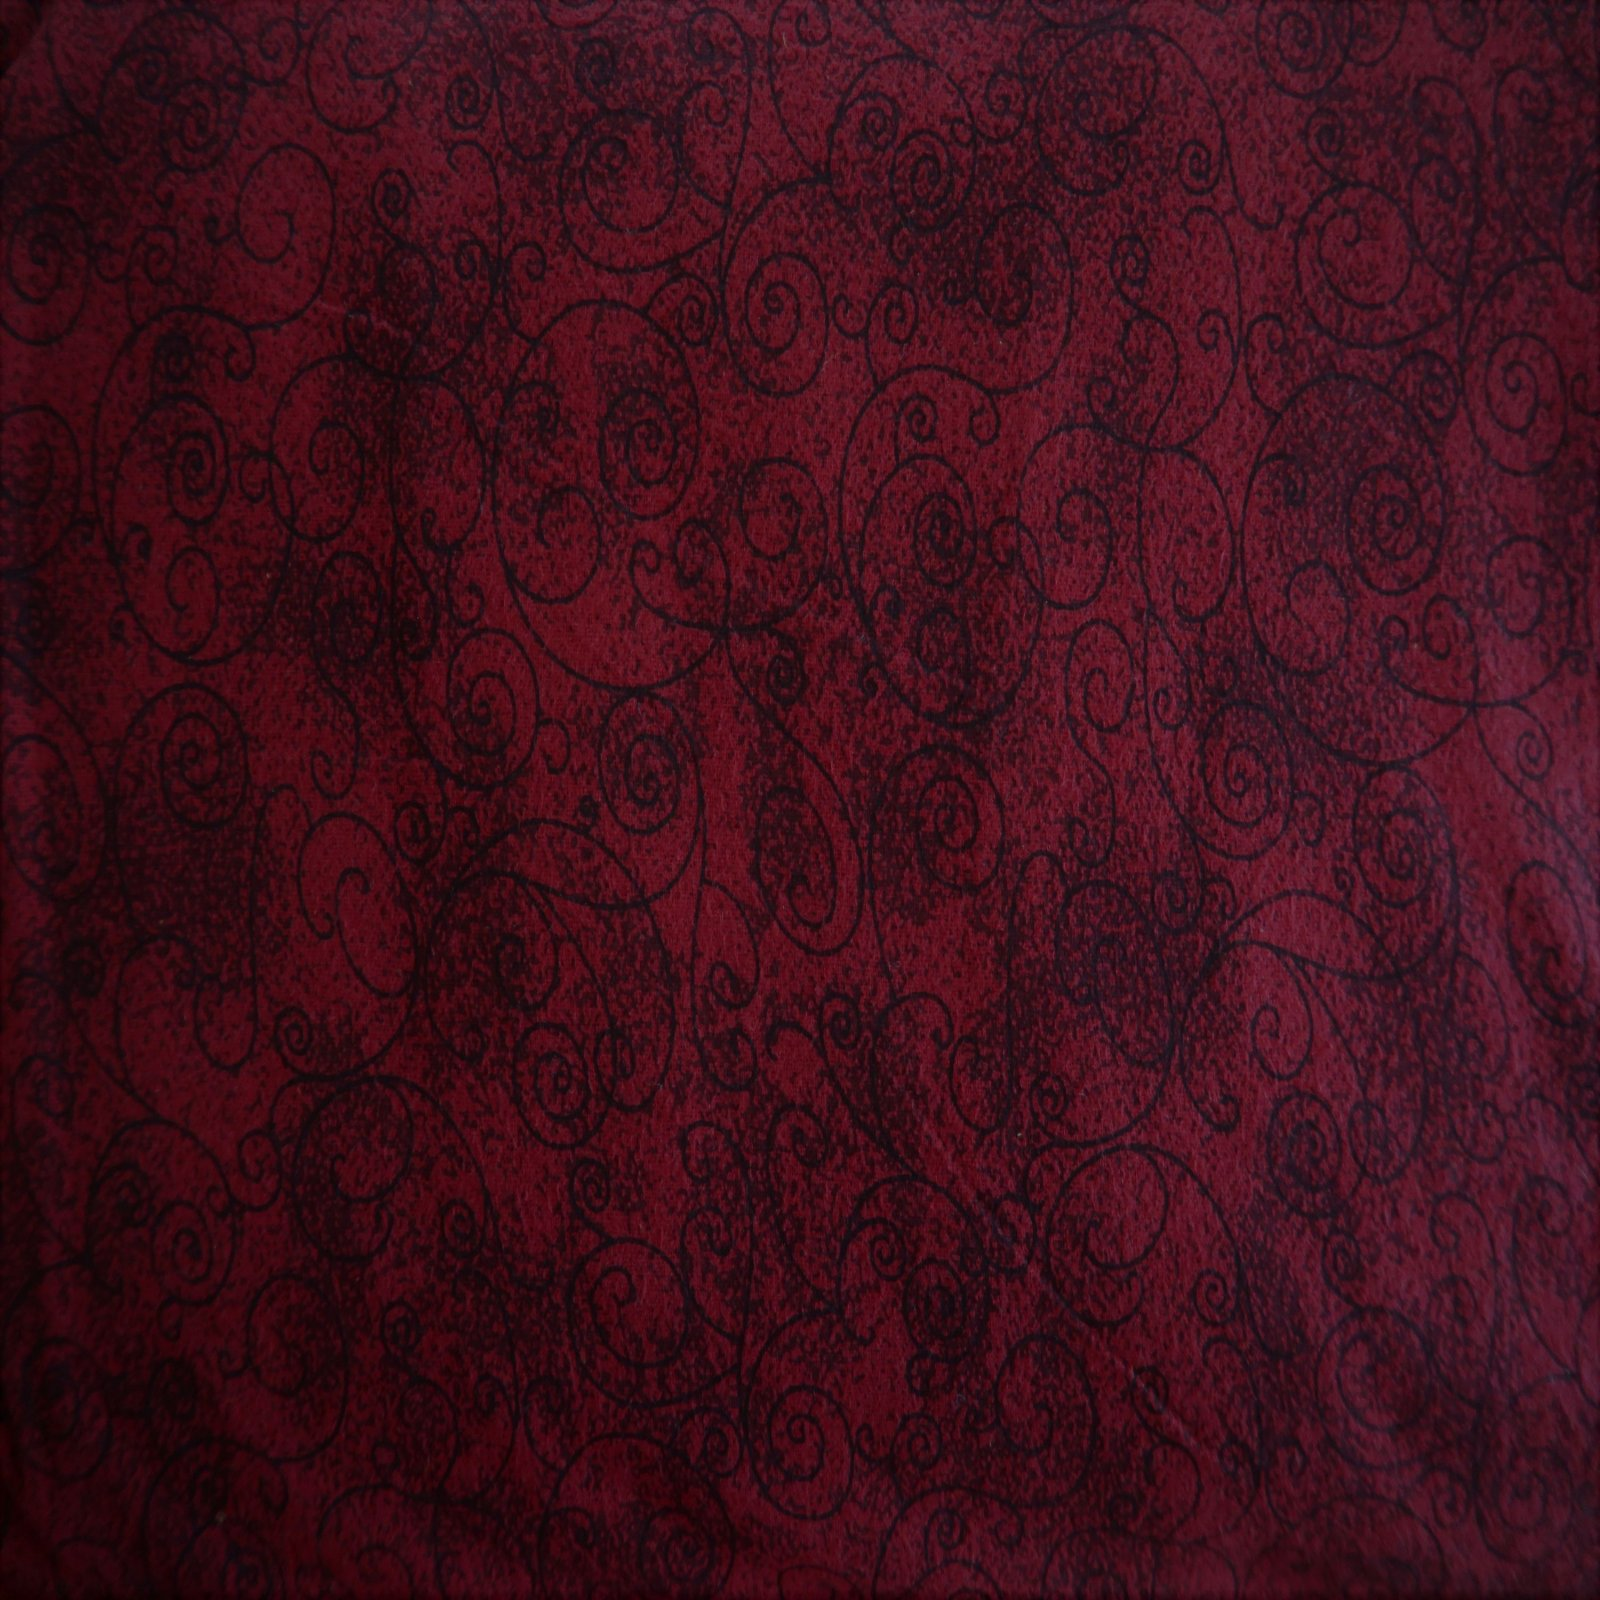 110 Willow Flannel - Scarlet Red